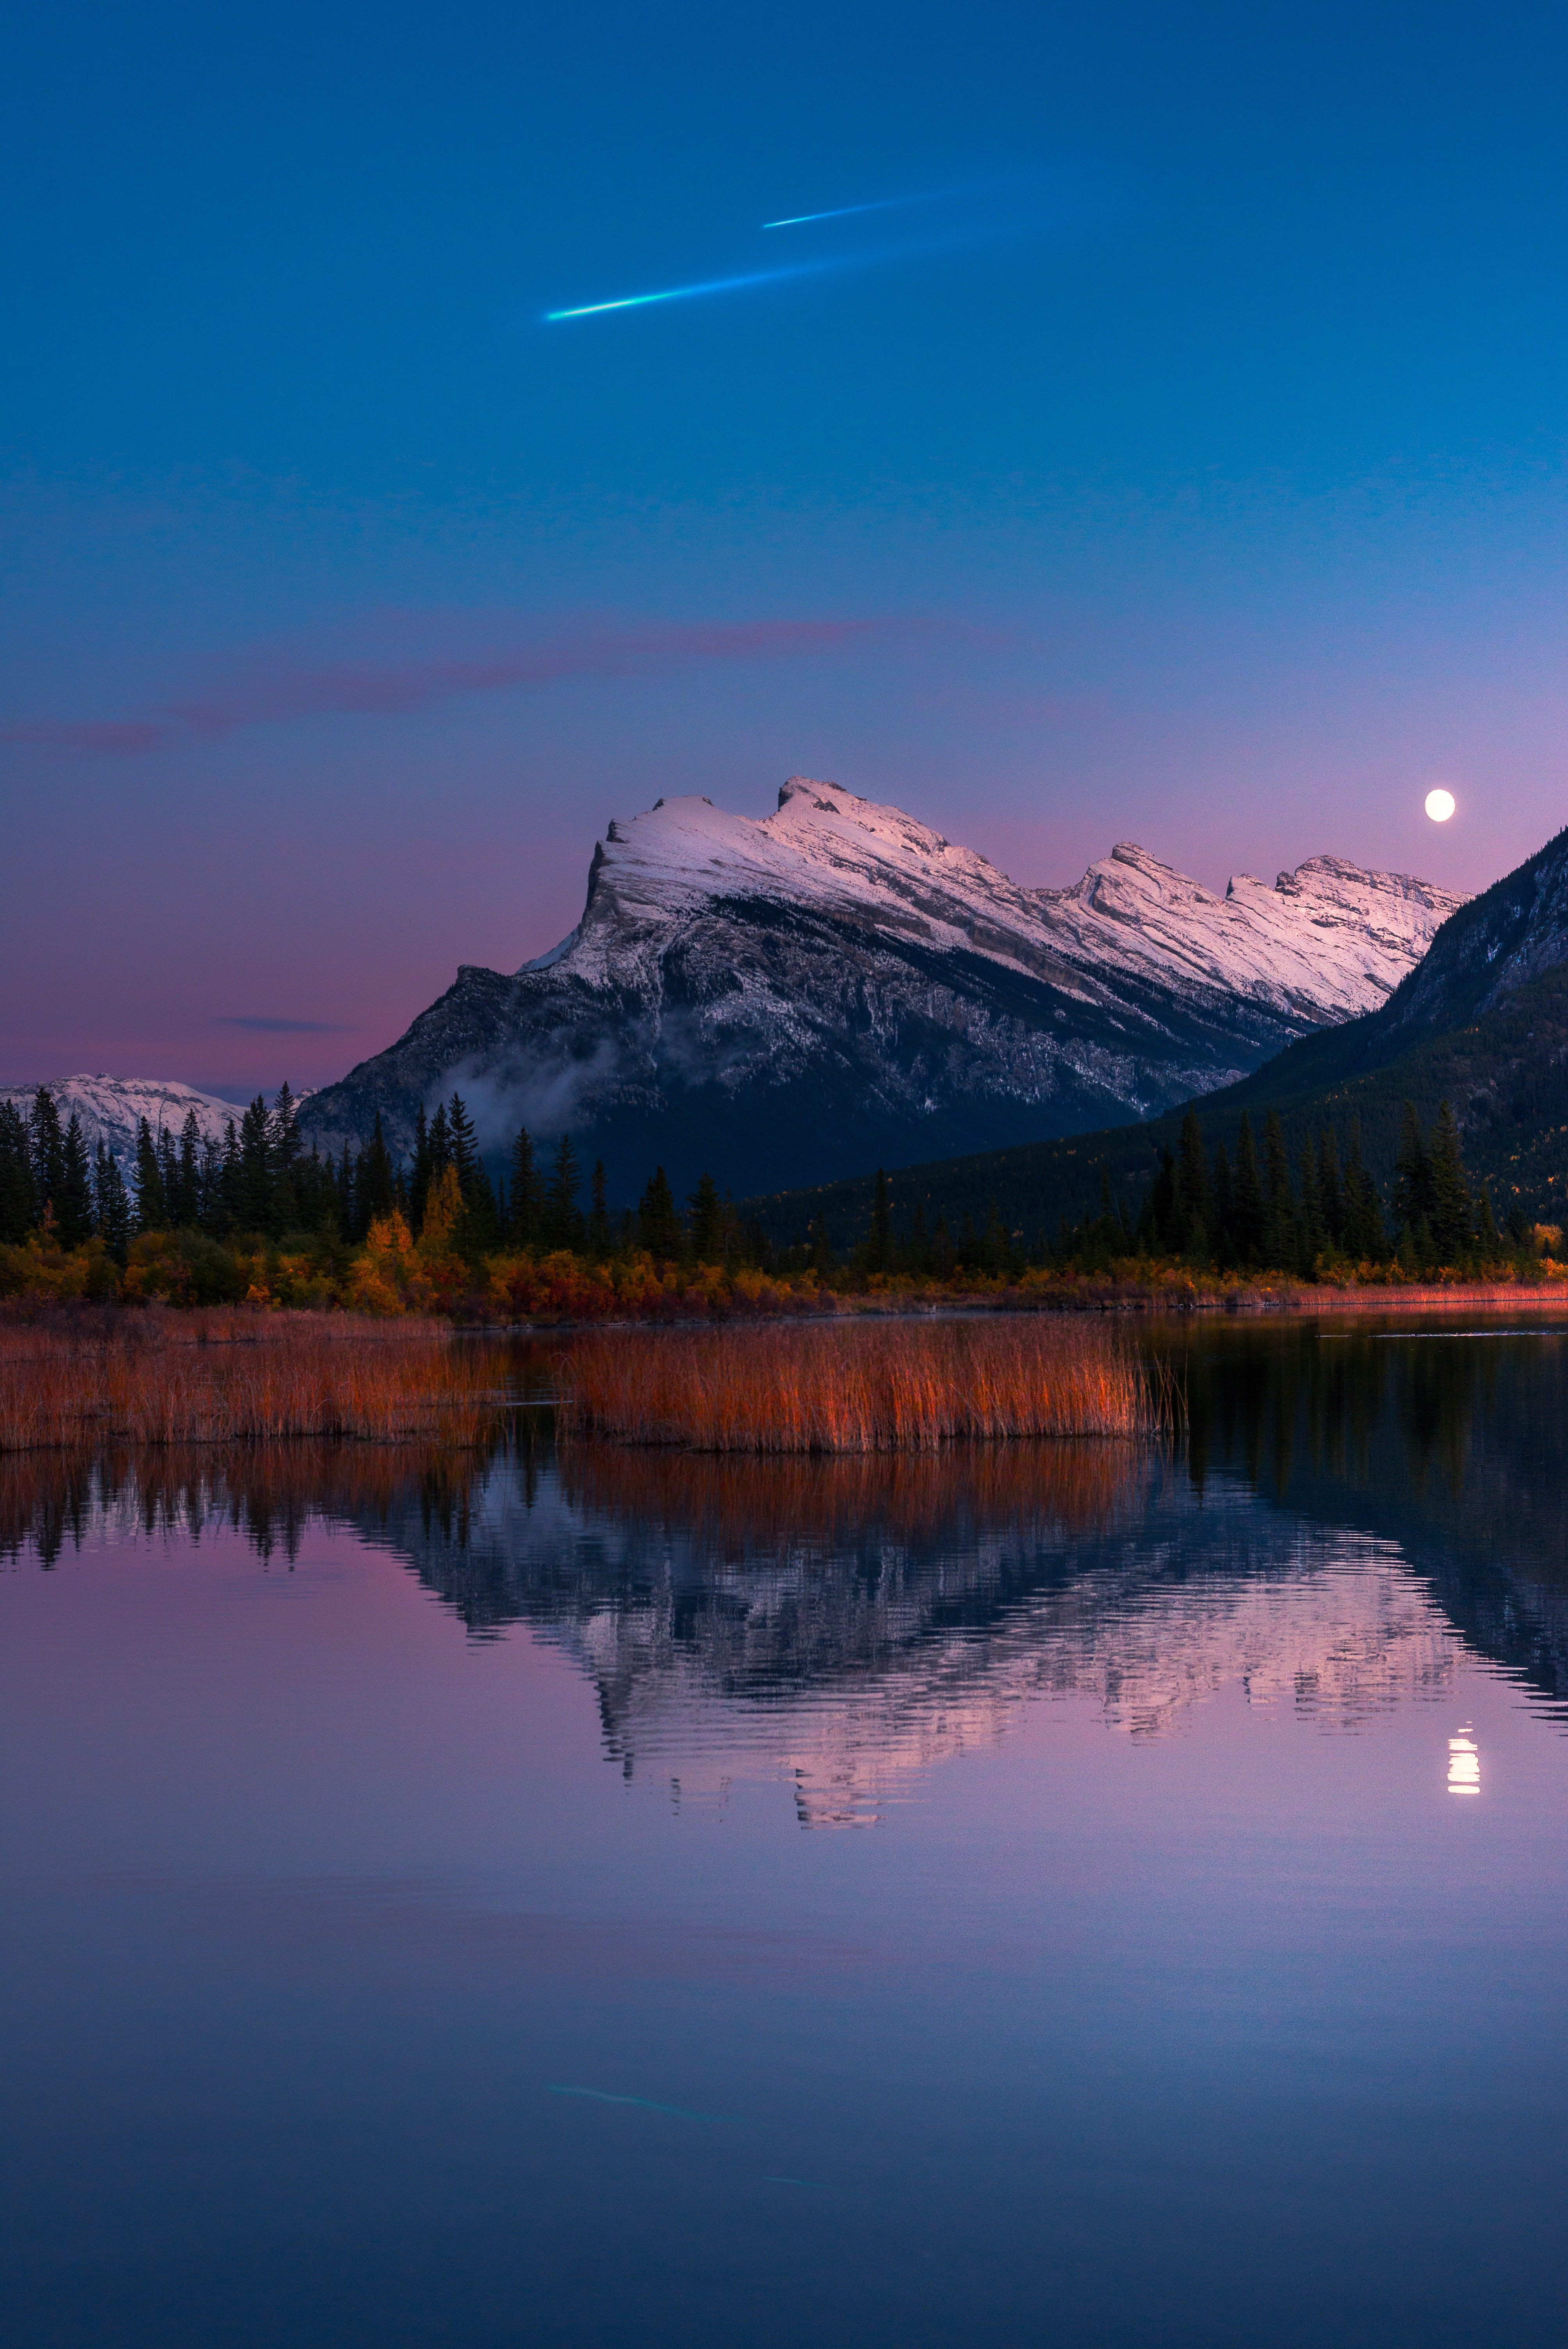 130856 download wallpaper Nature, Lake, Reflection, Mountains screensavers and pictures for free